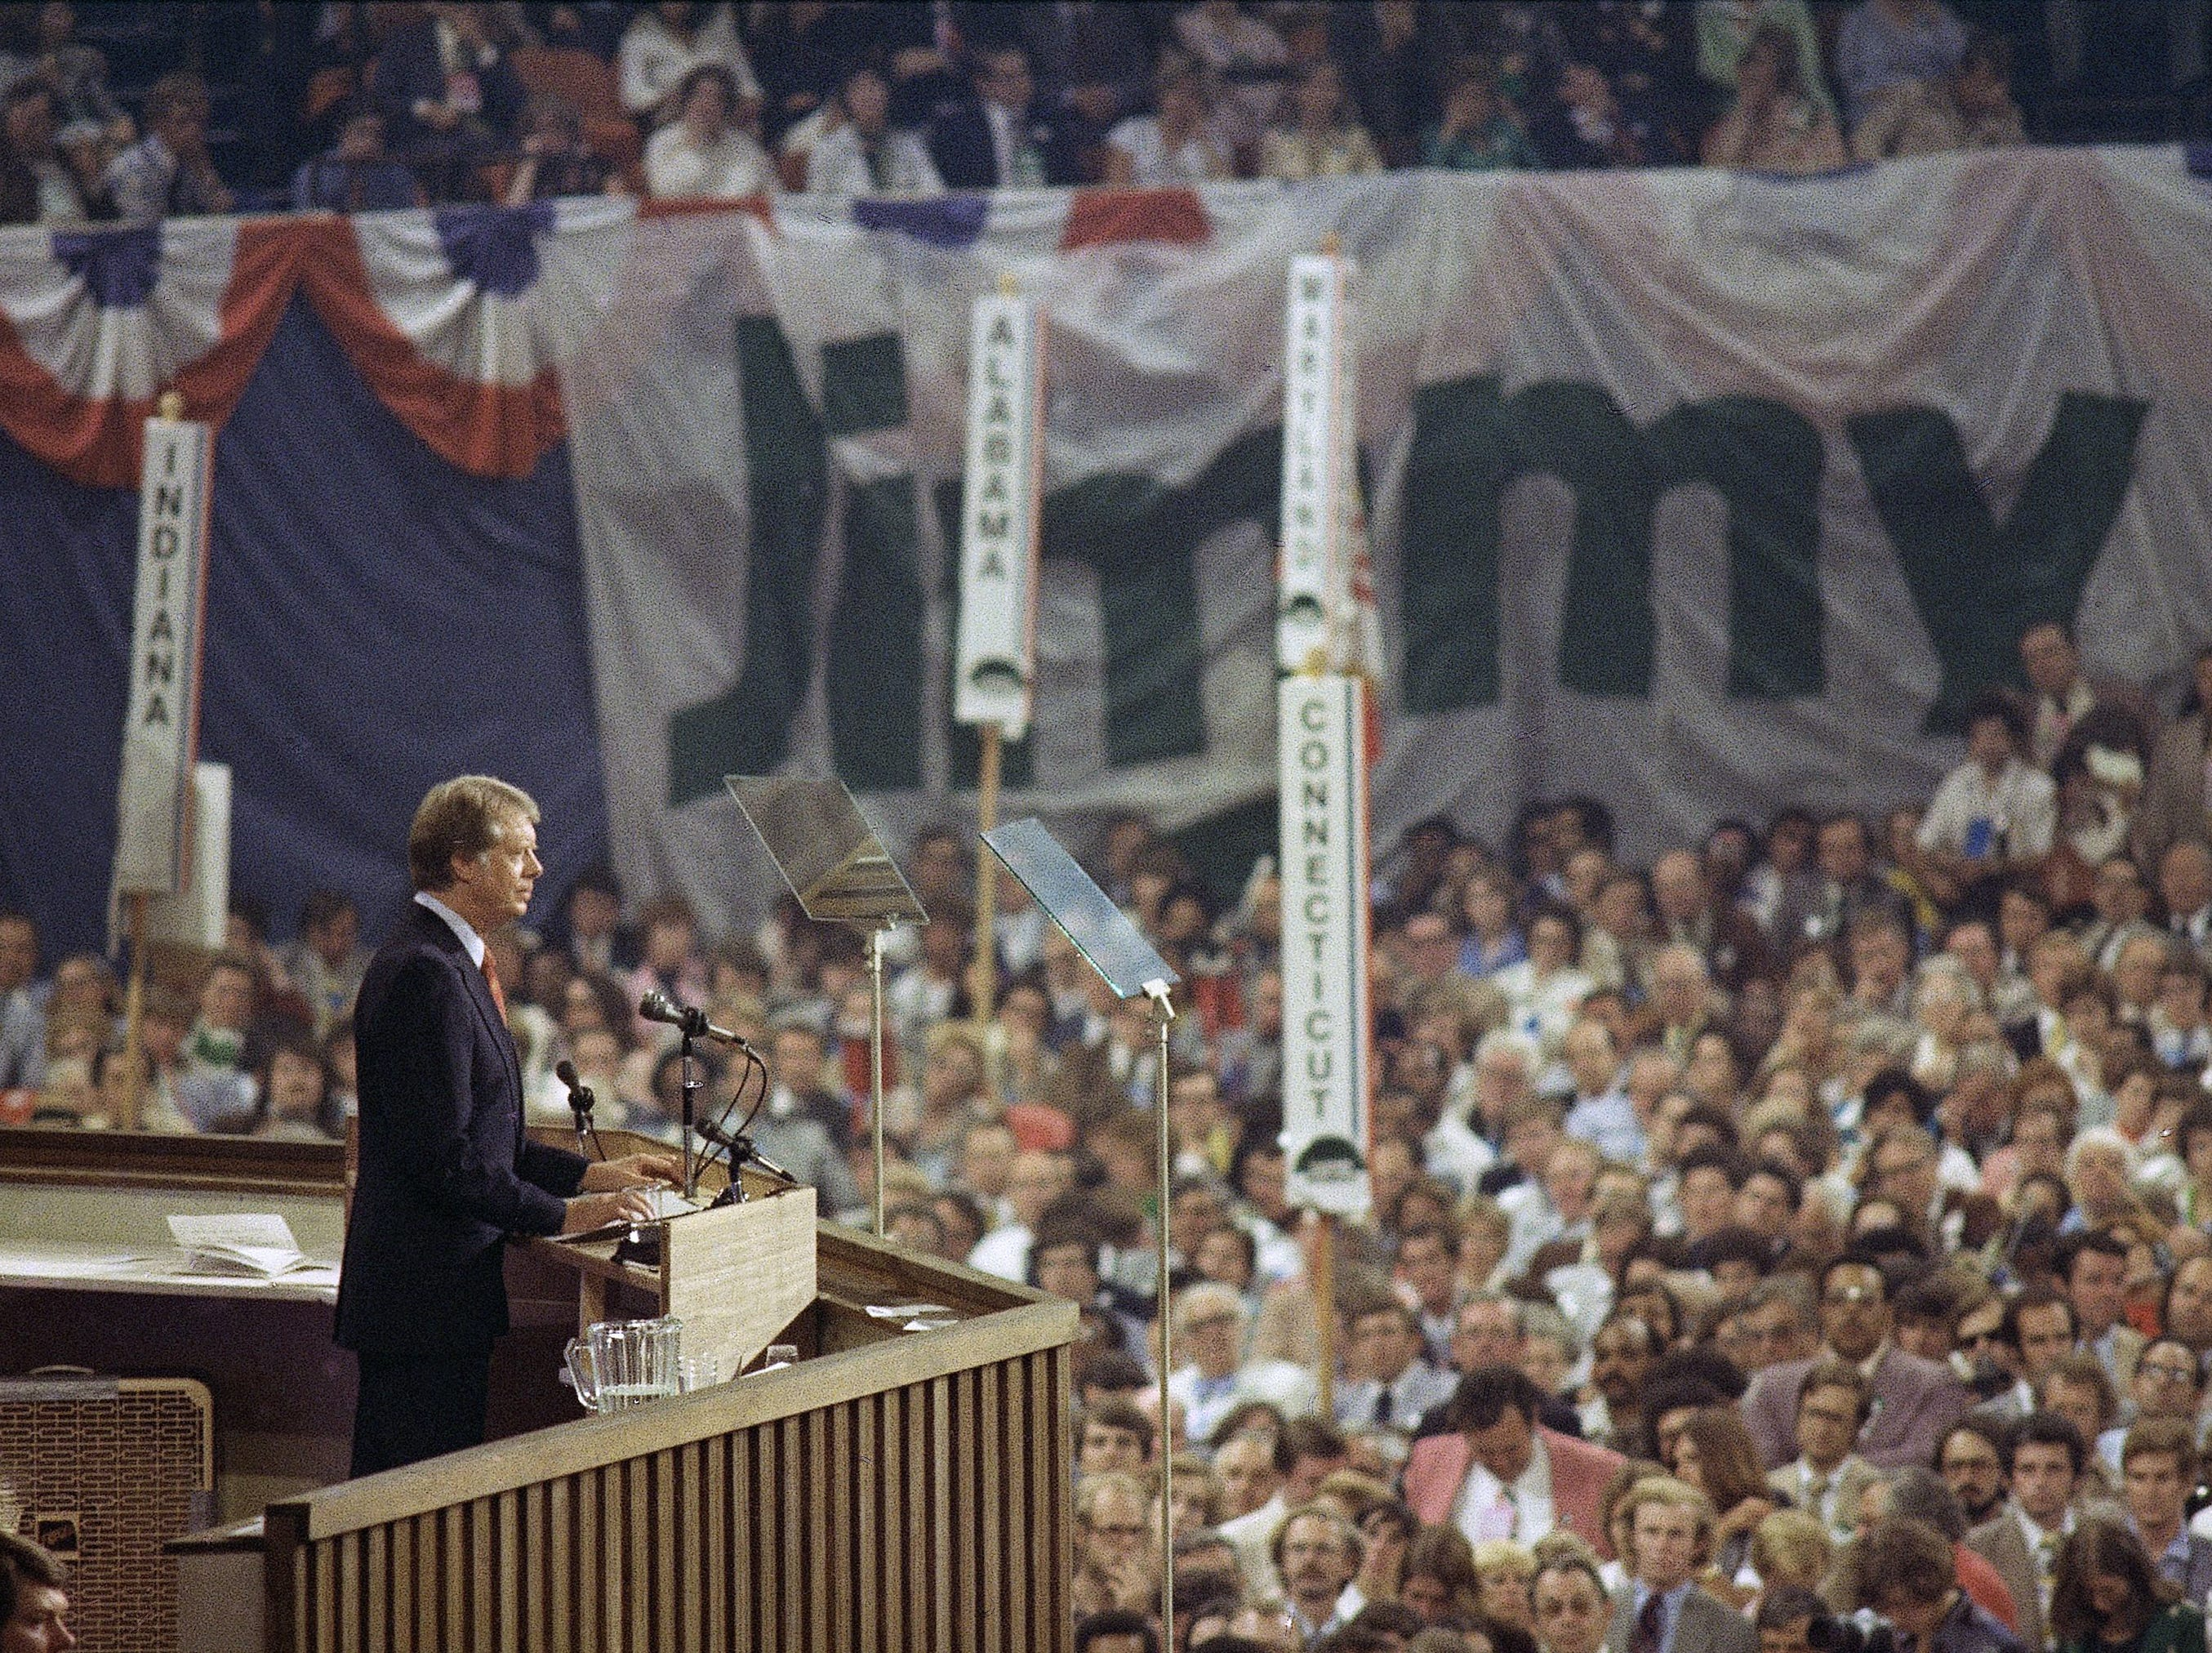 Jimmy Carter speaks on the final night of the Democratic National Convention at Madison Square Garden in New York  July 15, 1976.